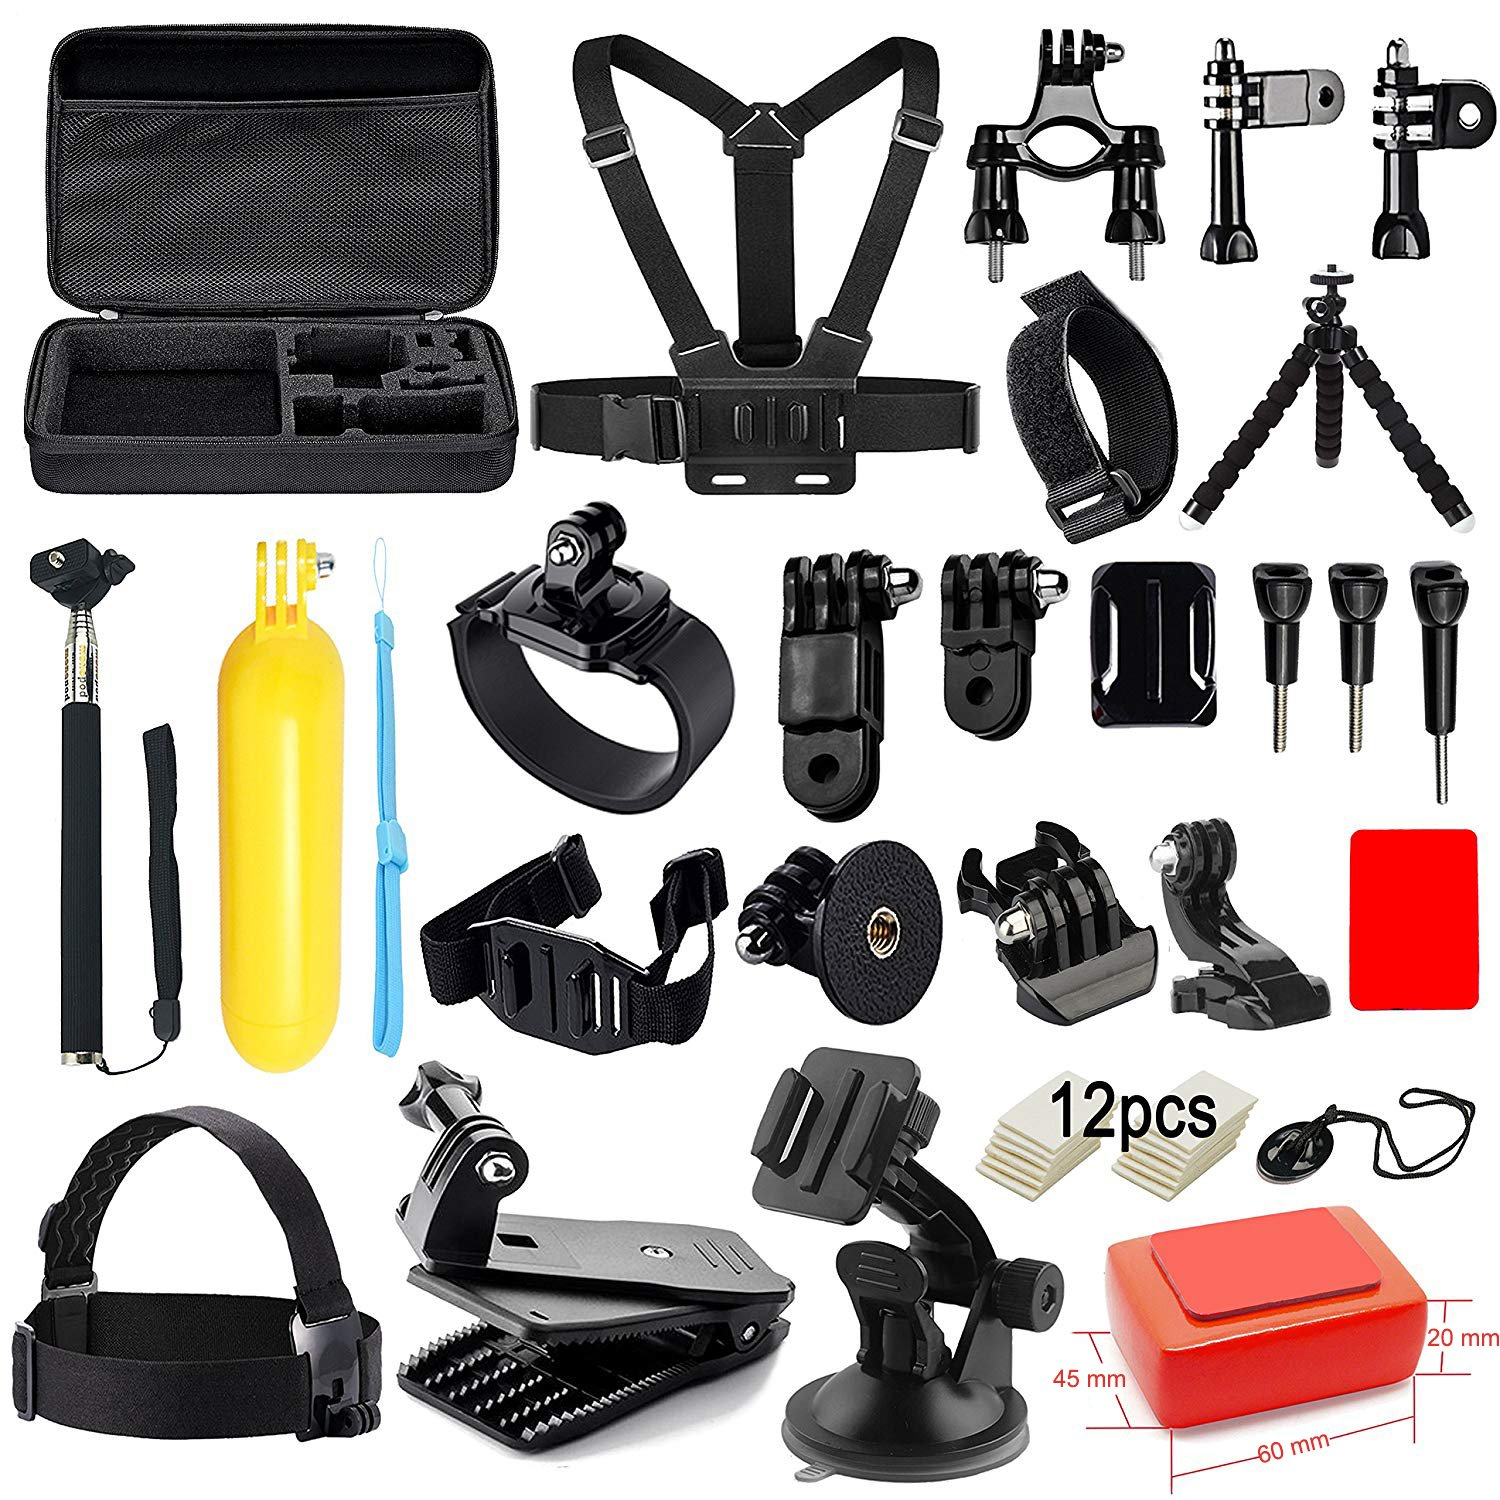 Soft Digits Accessories Kit for GoPro Hero 6 5 4 3+ Session Accessory Bundle Set for Action Camera SJ4000 SJ5000 SJ6000 Xiaomi Yi-Flotation Handle+Head Strap+Chest Strap by Soft digits